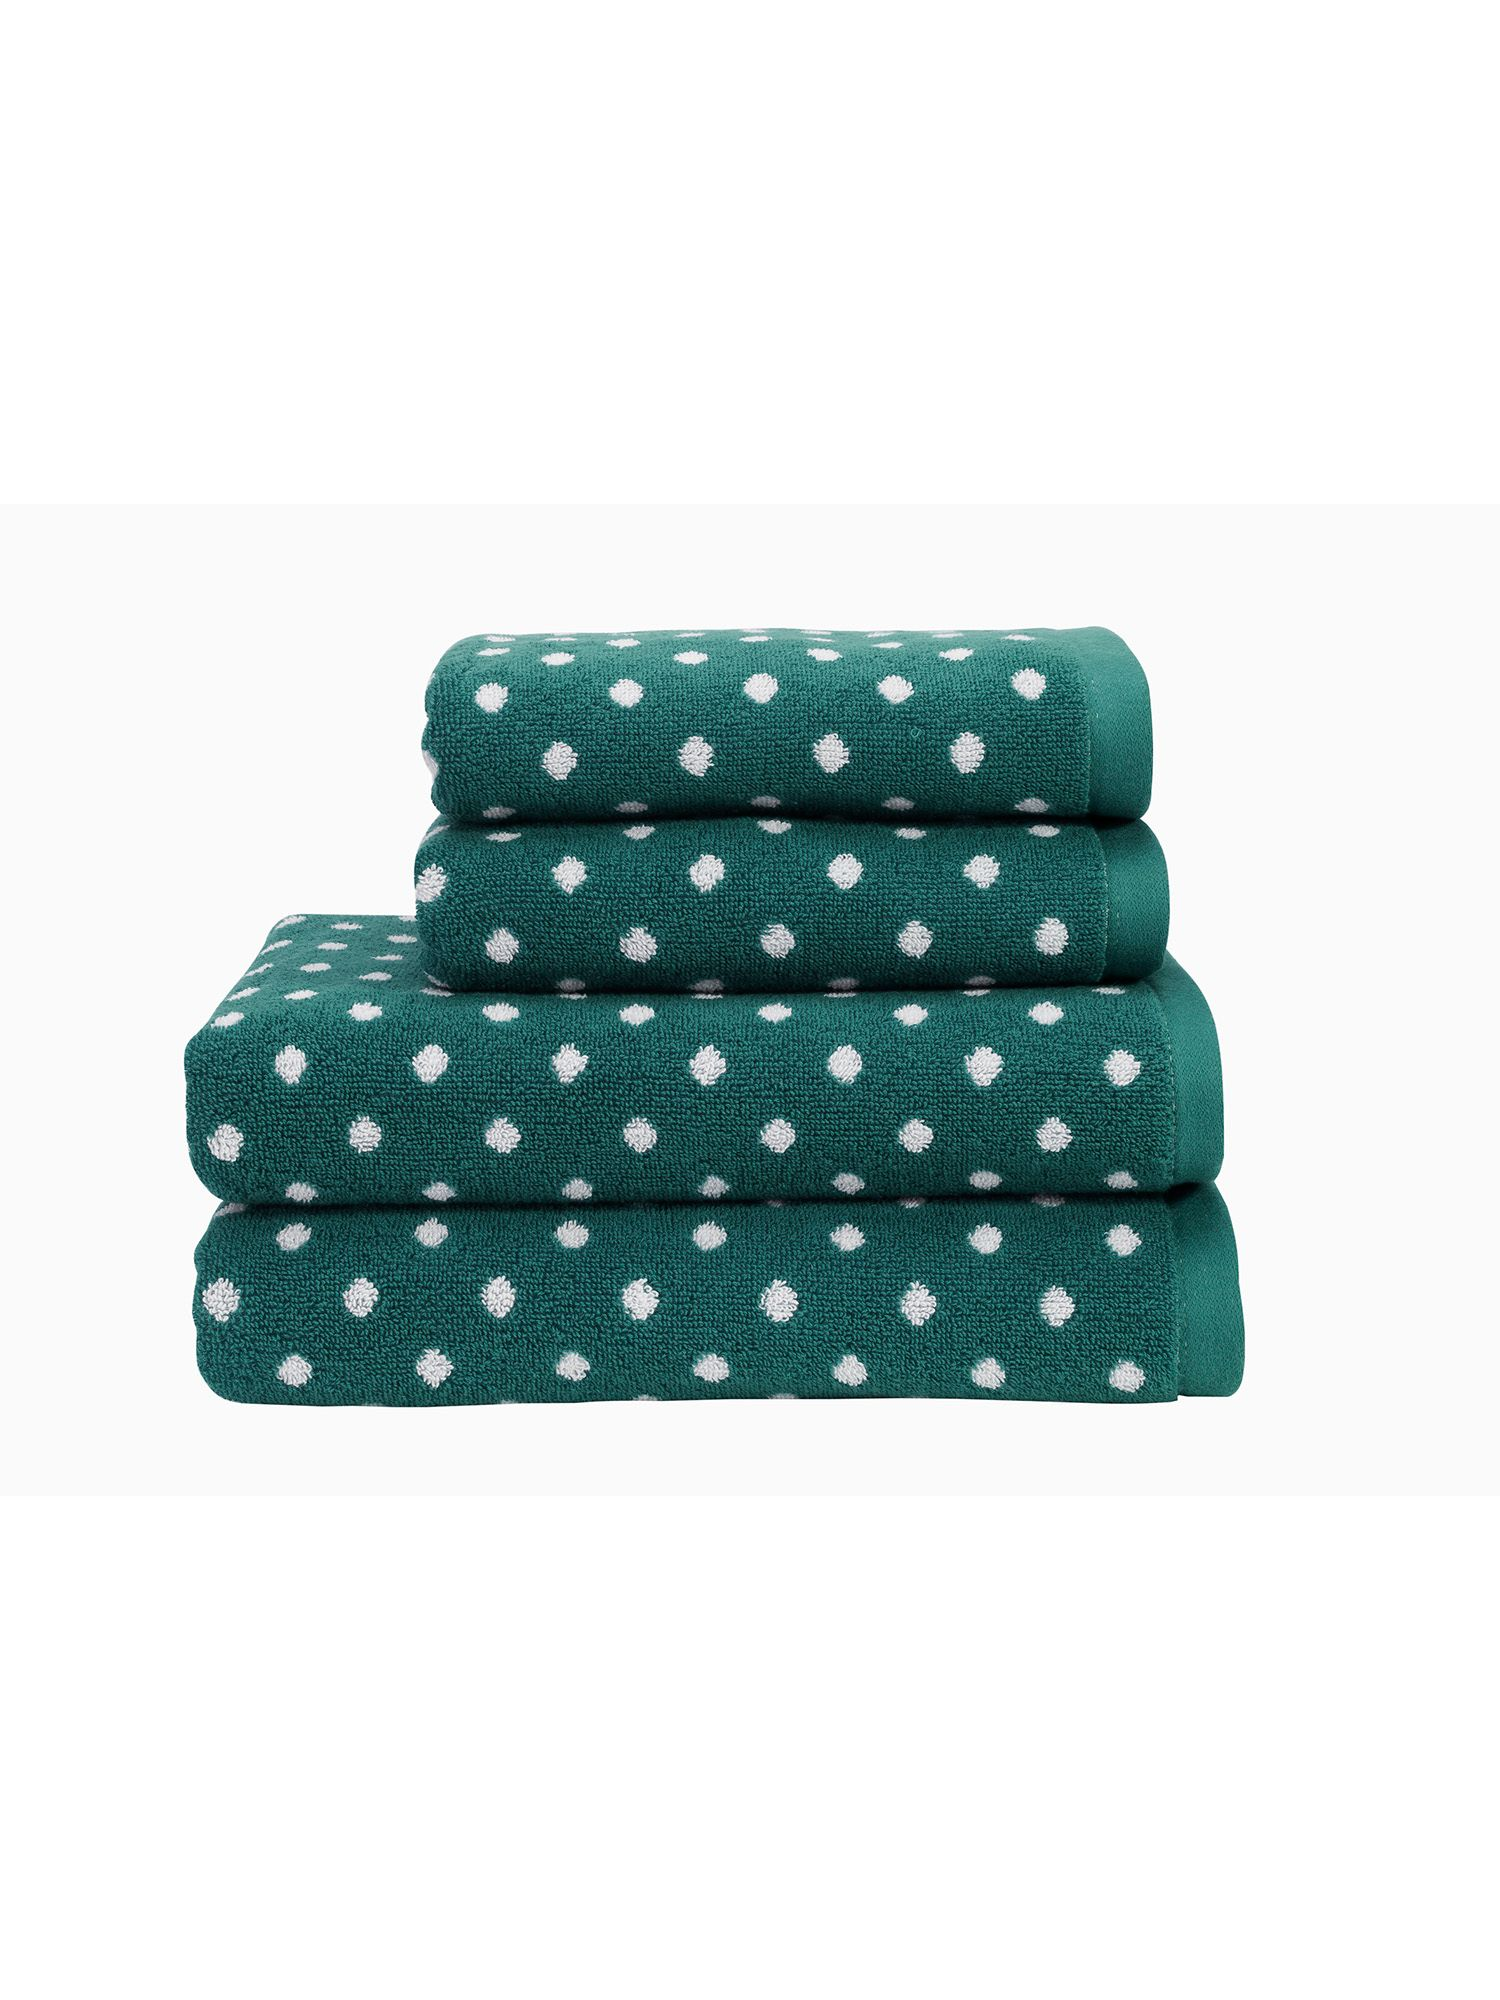 Georgia lagoon spot towels